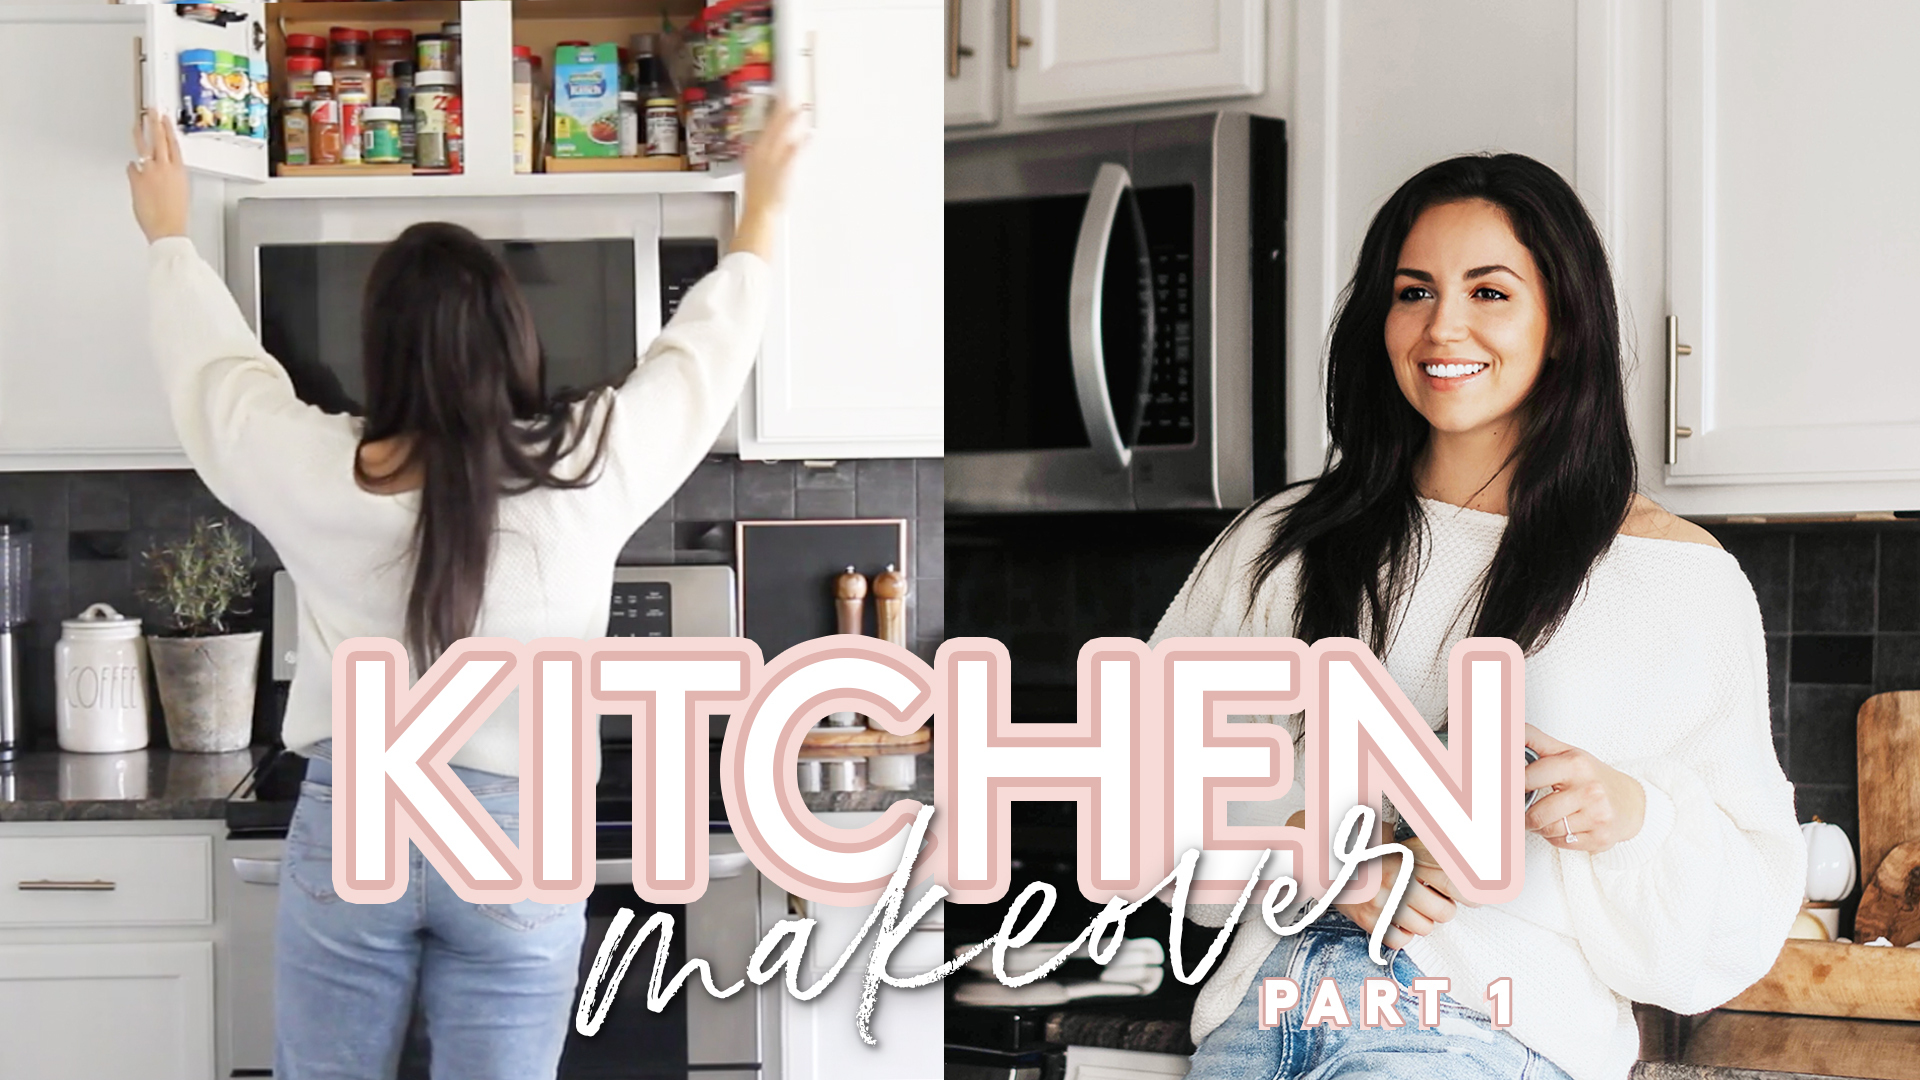 Yes, you can wrangle the chaos in your kitchen cabinets—Haley Cairo shows us how in the latest episode of Simply.